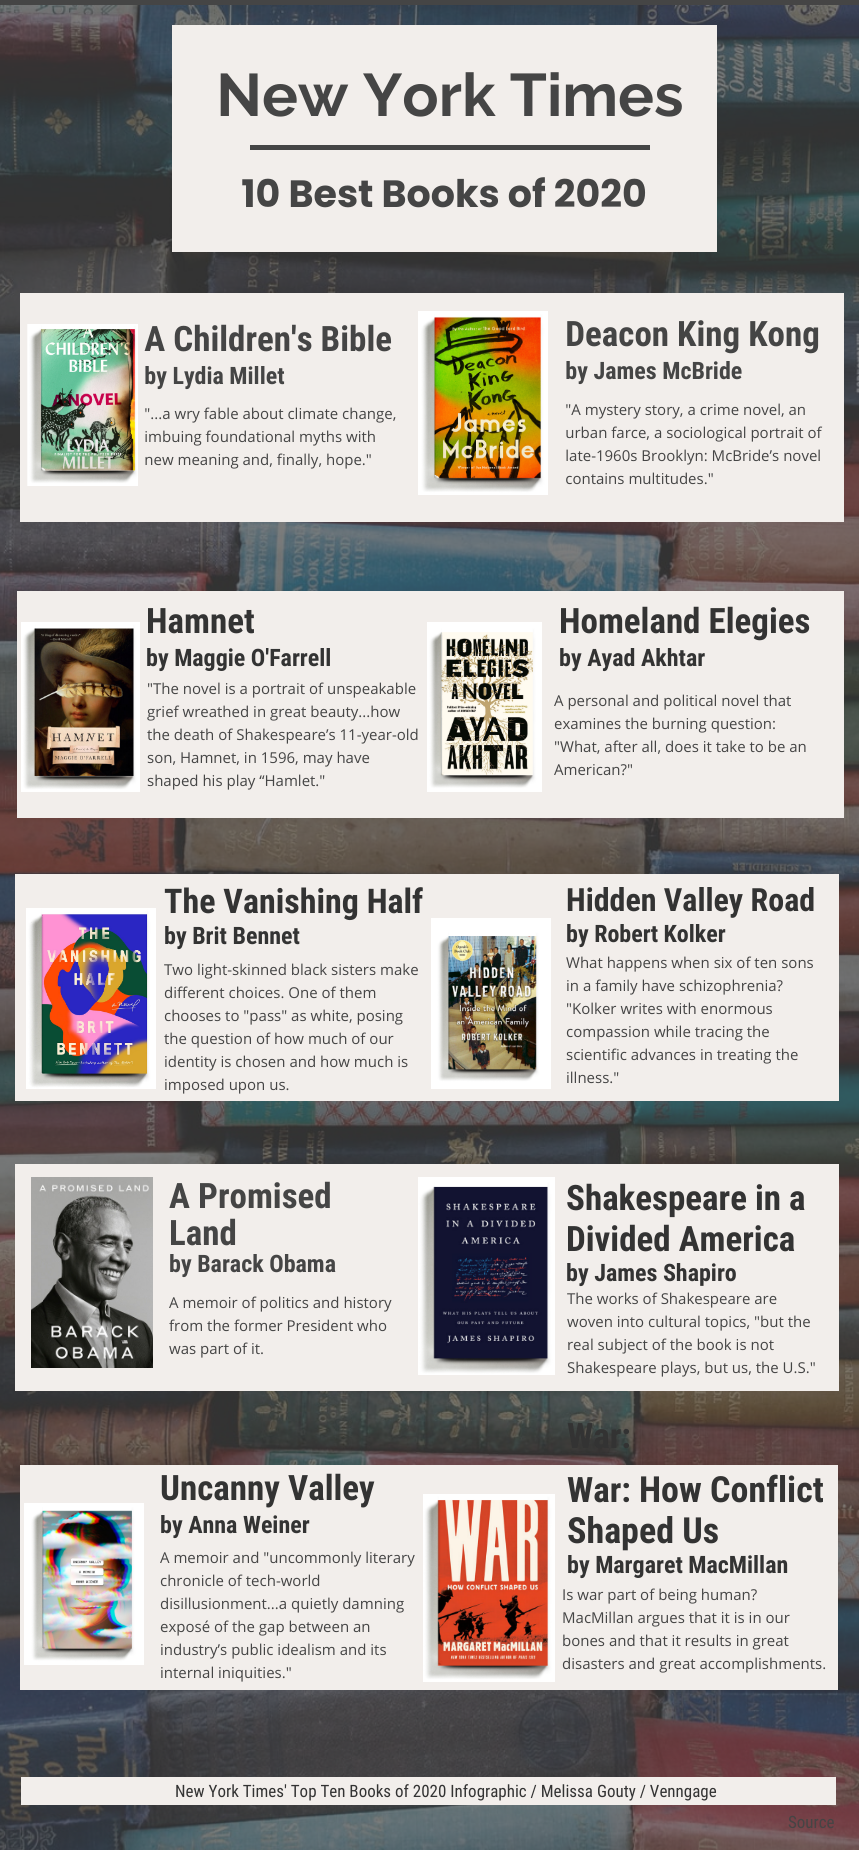 Infographic NYTs 10 best books of 2020